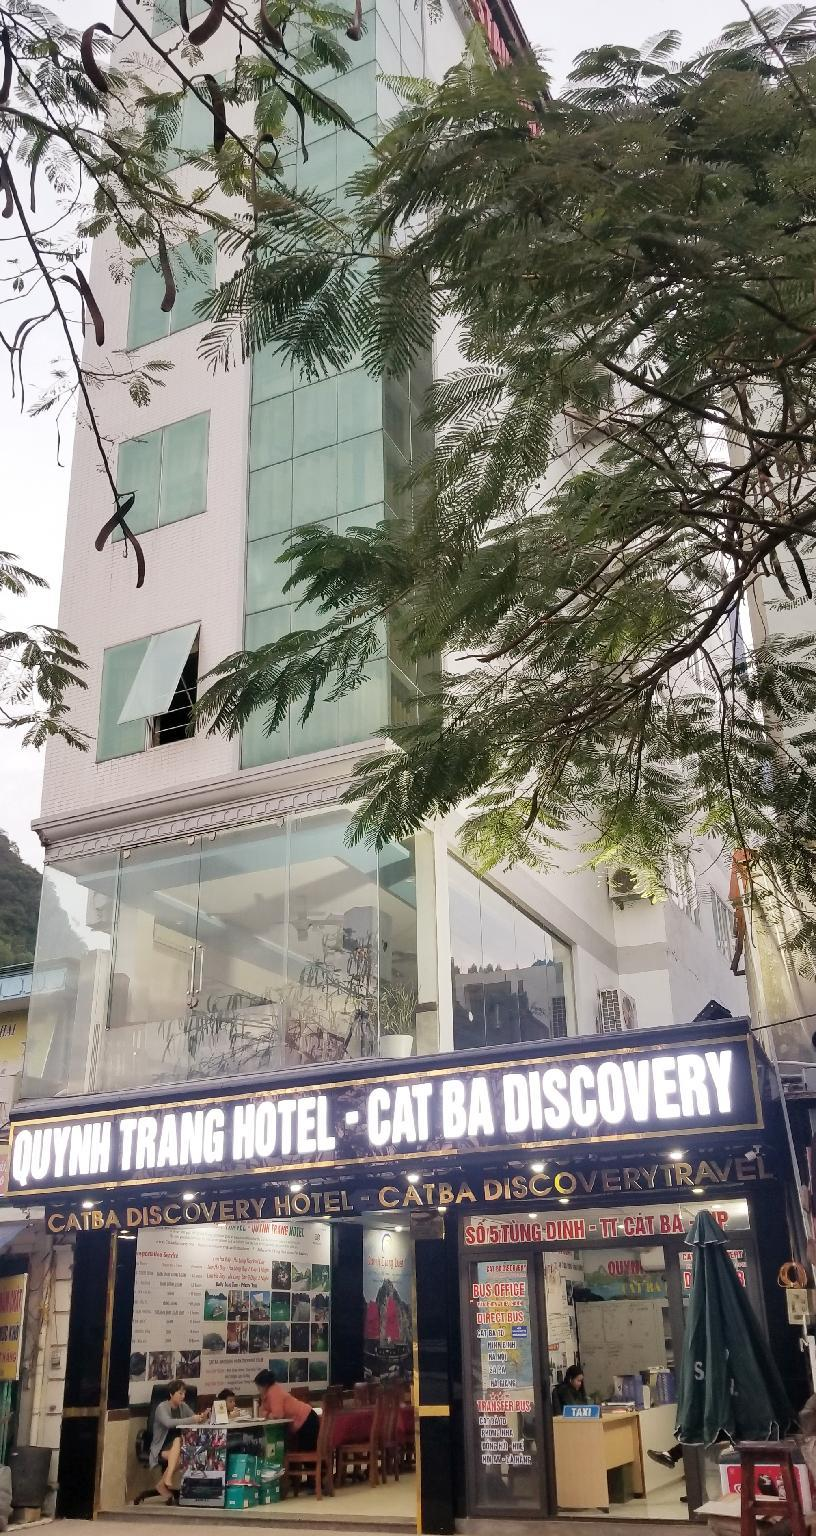 Cat Ba Discovery Hotel